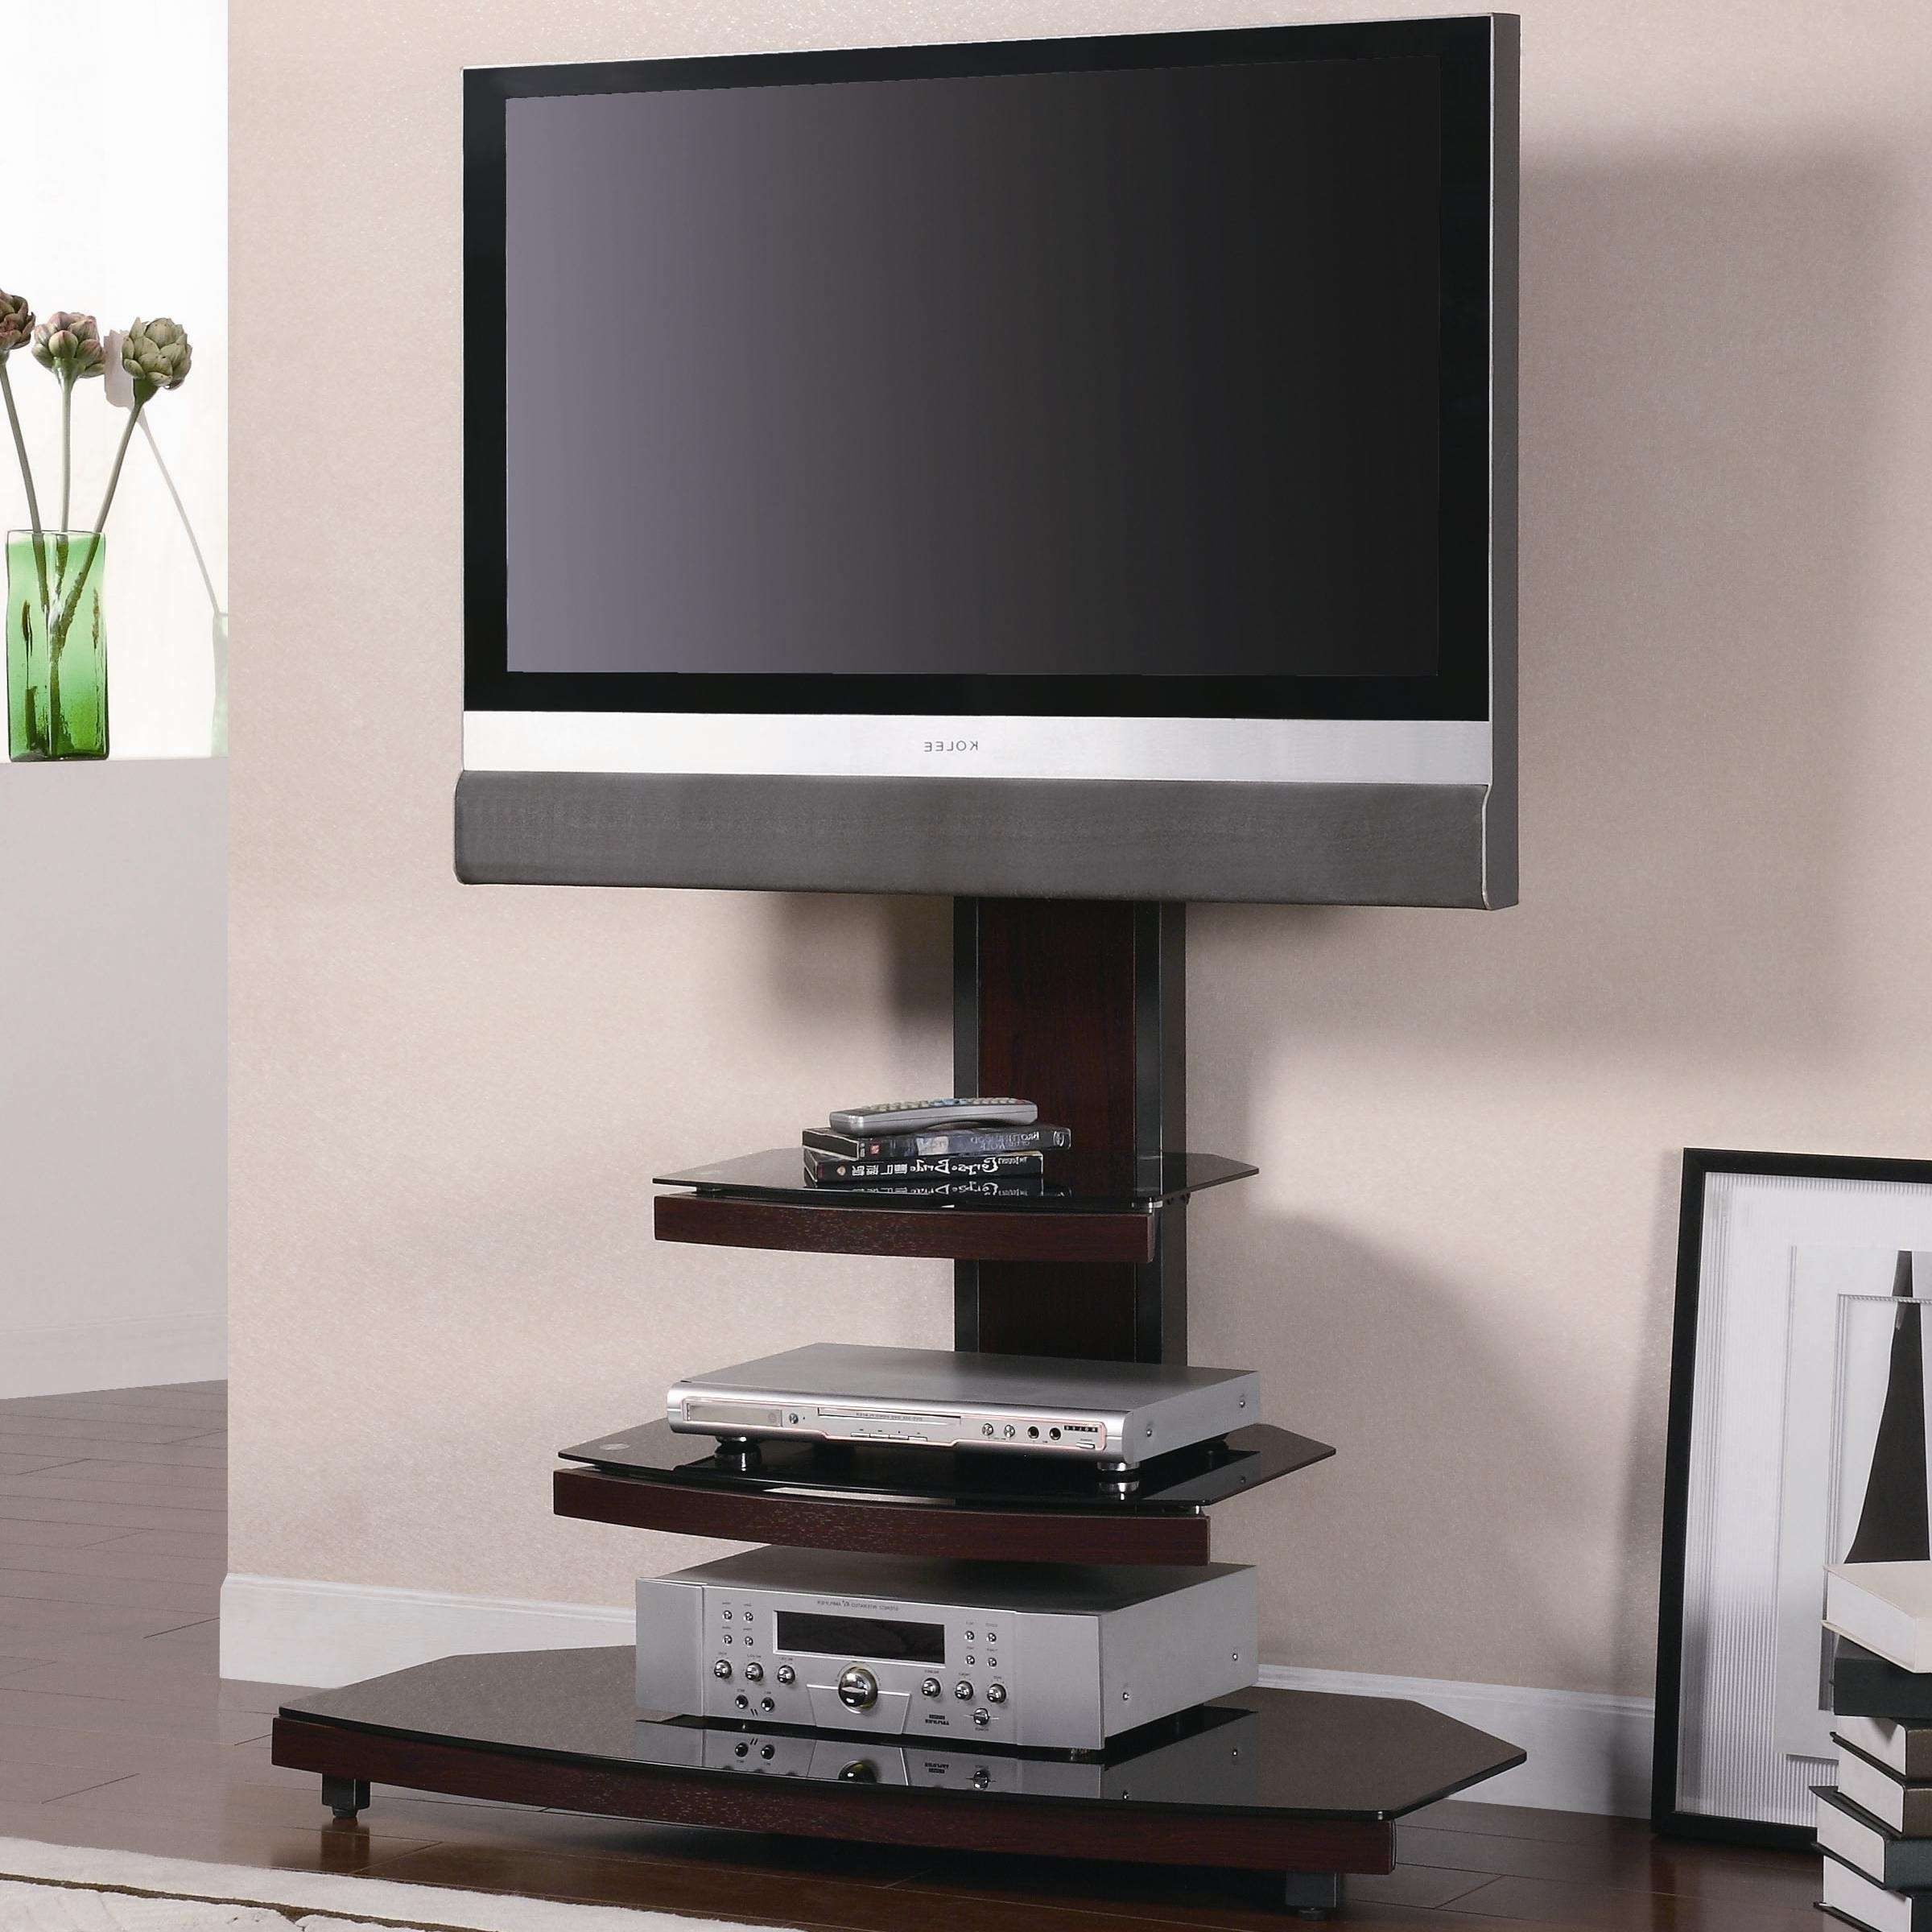 Sense Of Style Tv Stands – Home Decorating Designs With Regard To Sleek Tv Stands (View 7 of 15)